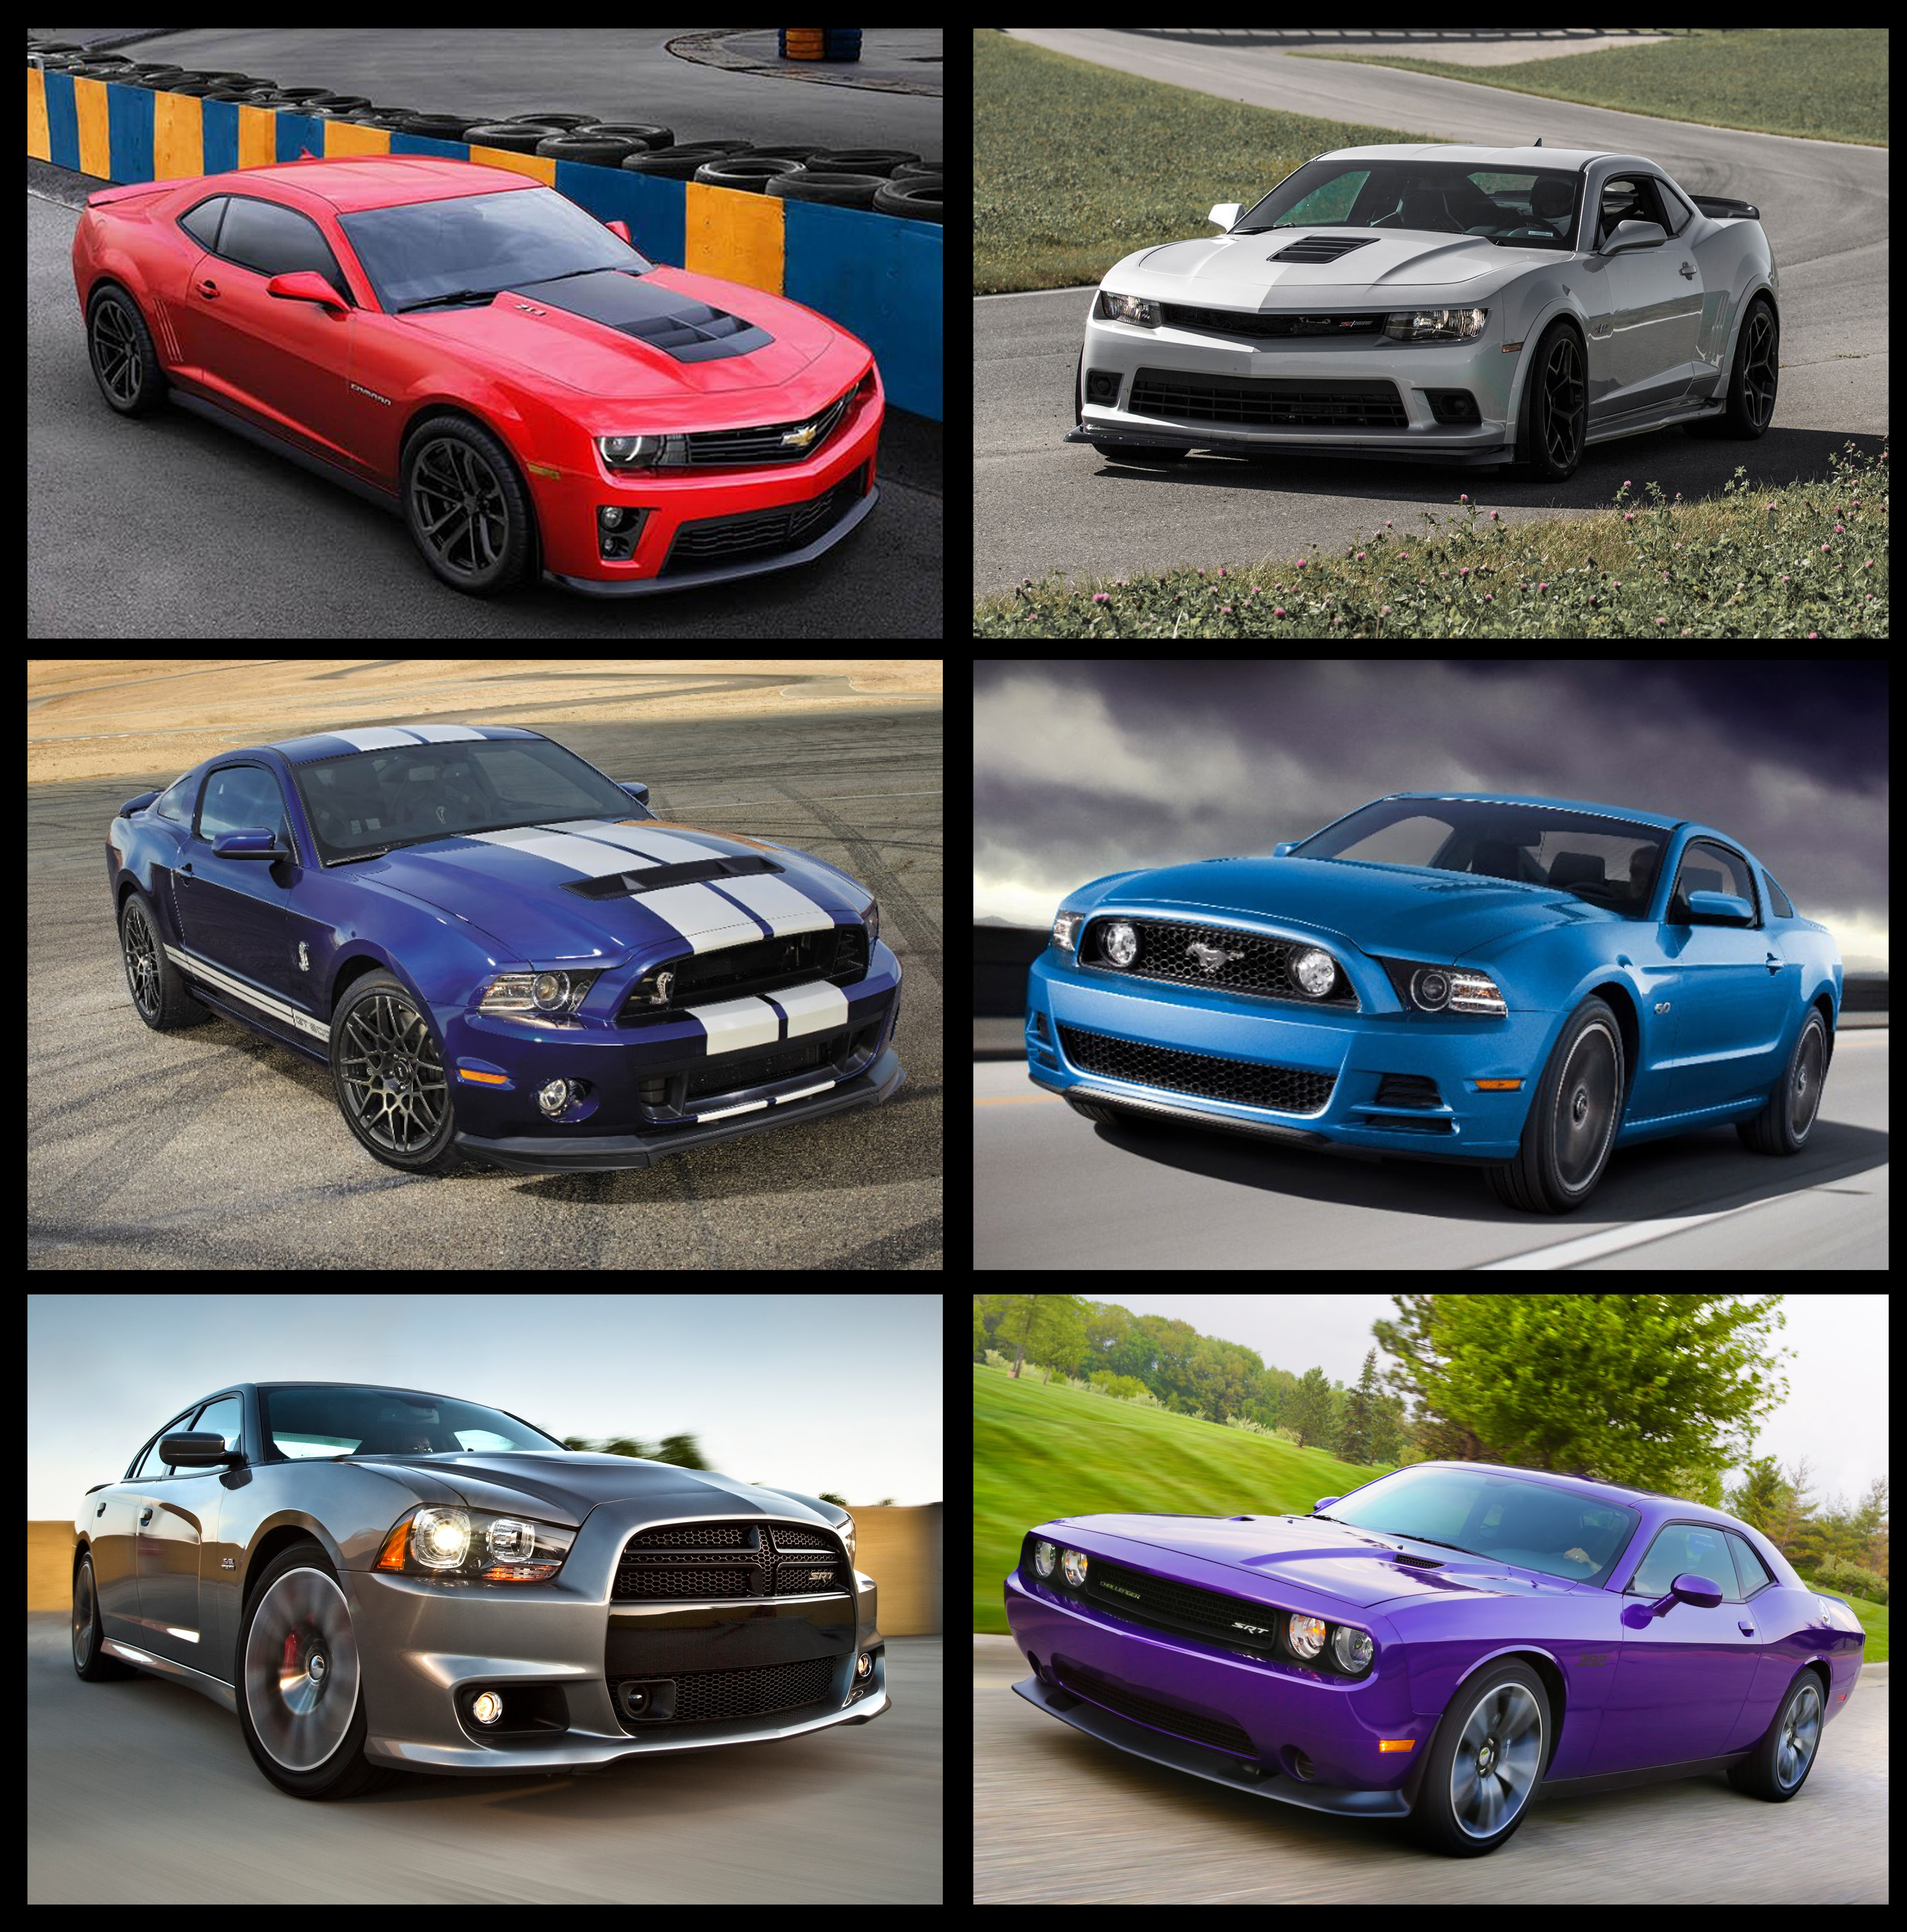 2014 Muscle Cars: The Best before They\u2019re Available  Popular Hot Rodding  Hot Rod Network